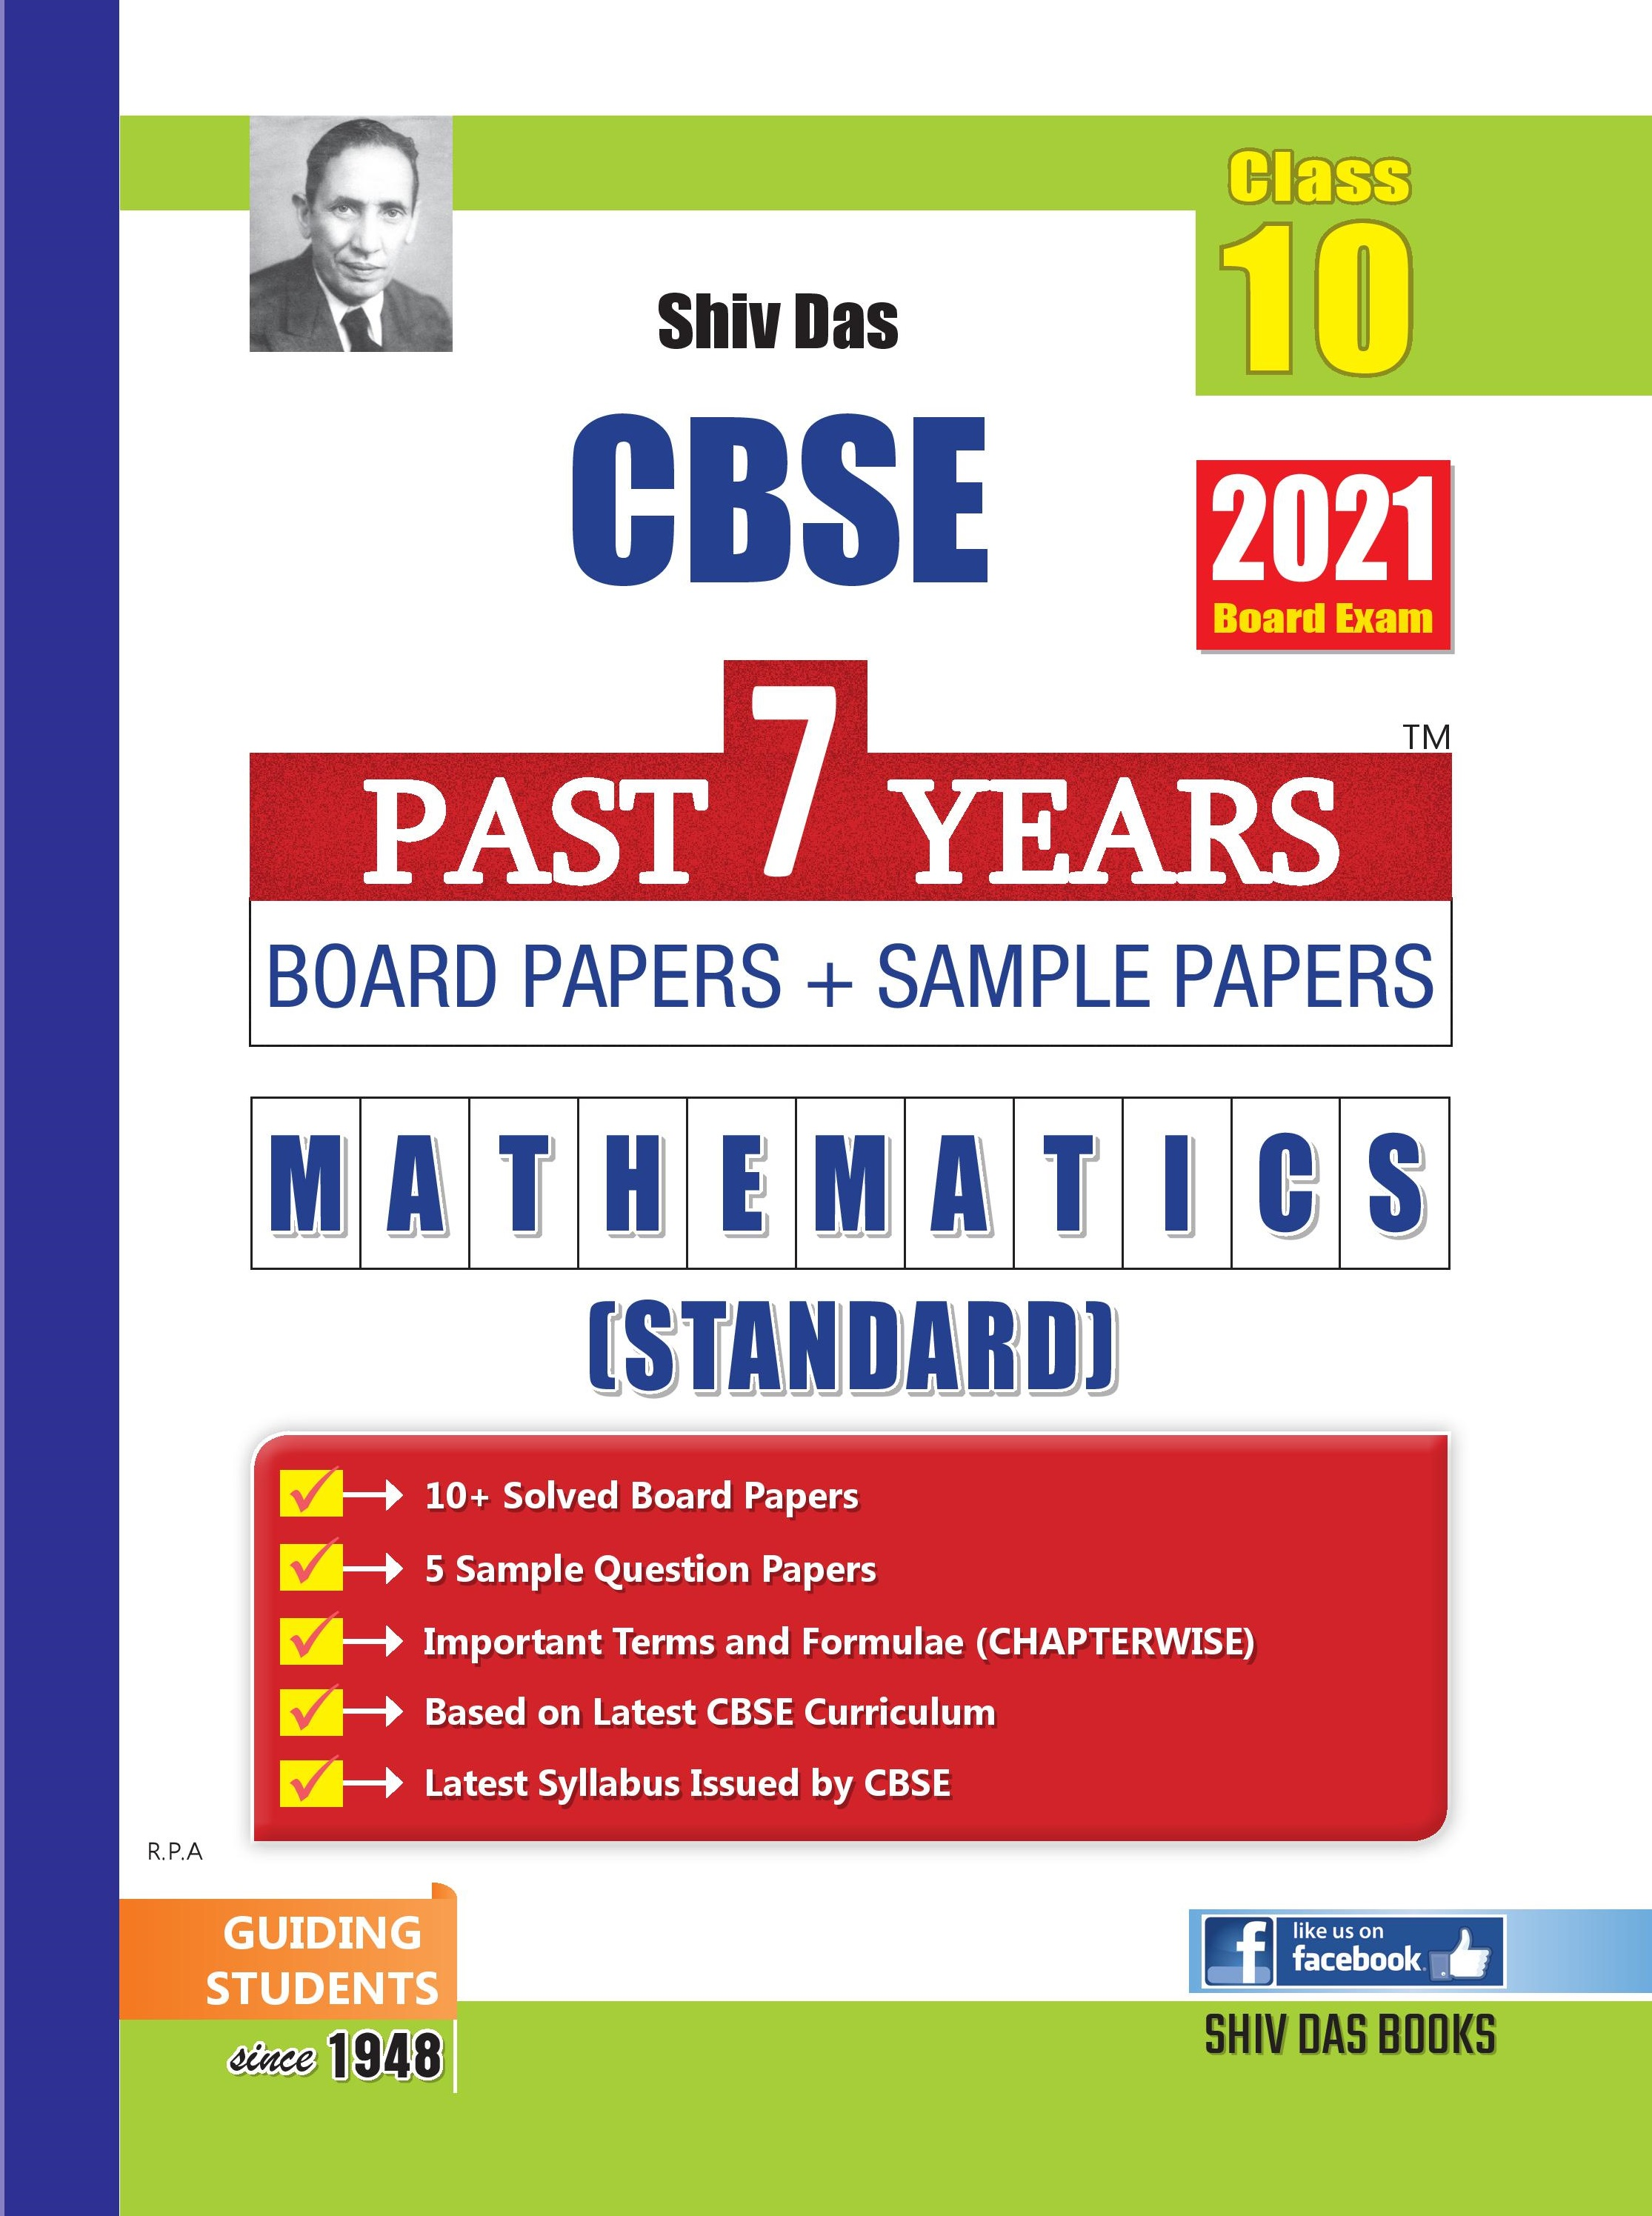 CBSE Past 7 Years Solved Board Papers and Sample Papers for Class 10 Mathematics (STANDARD) By SHIVDAS (2021 Board Exam Edition)